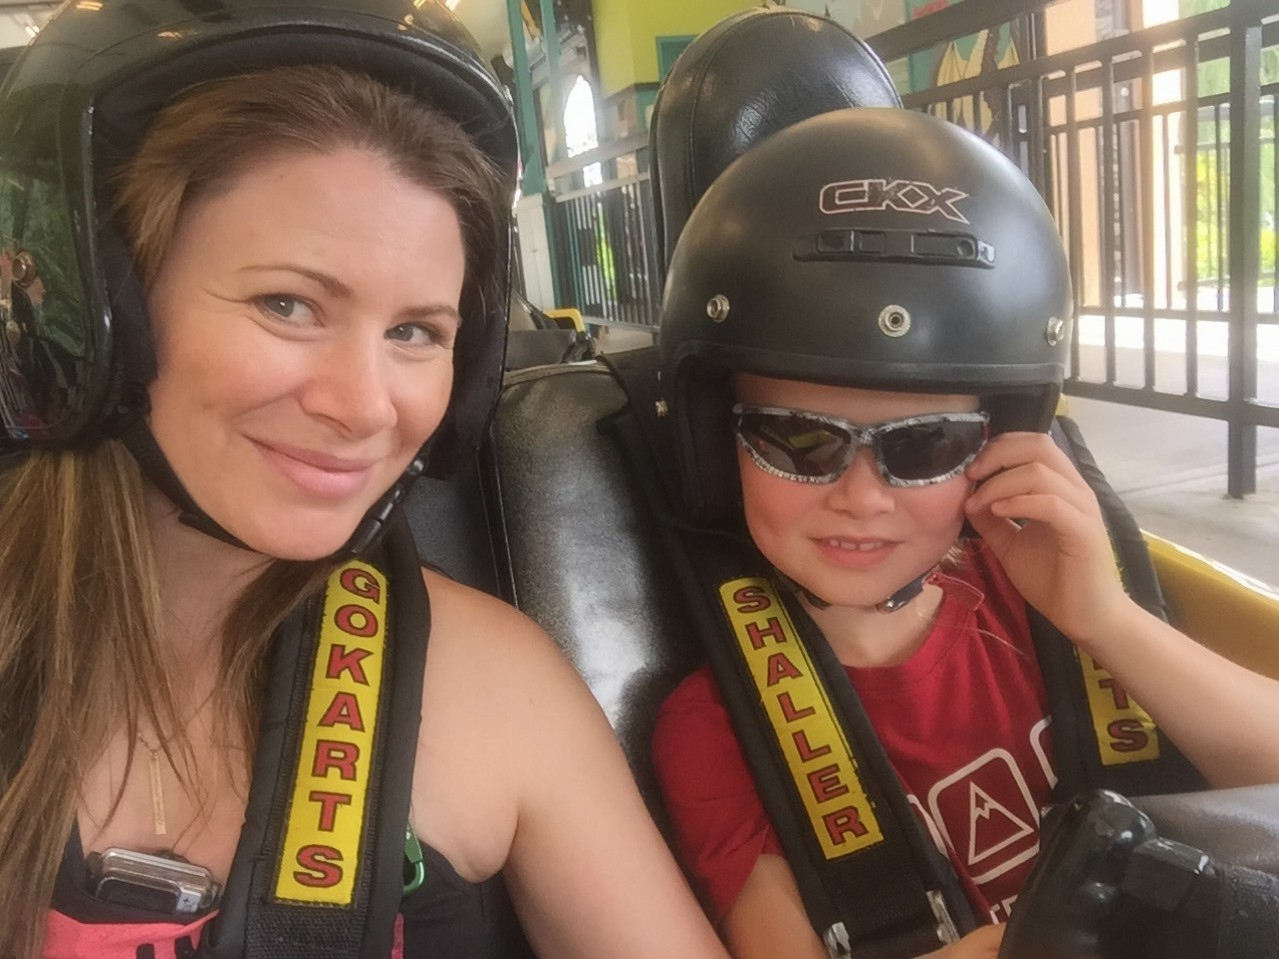 Go Cart Races at Castle Fun Park in Abbotsford with #ExploreBCbyBus